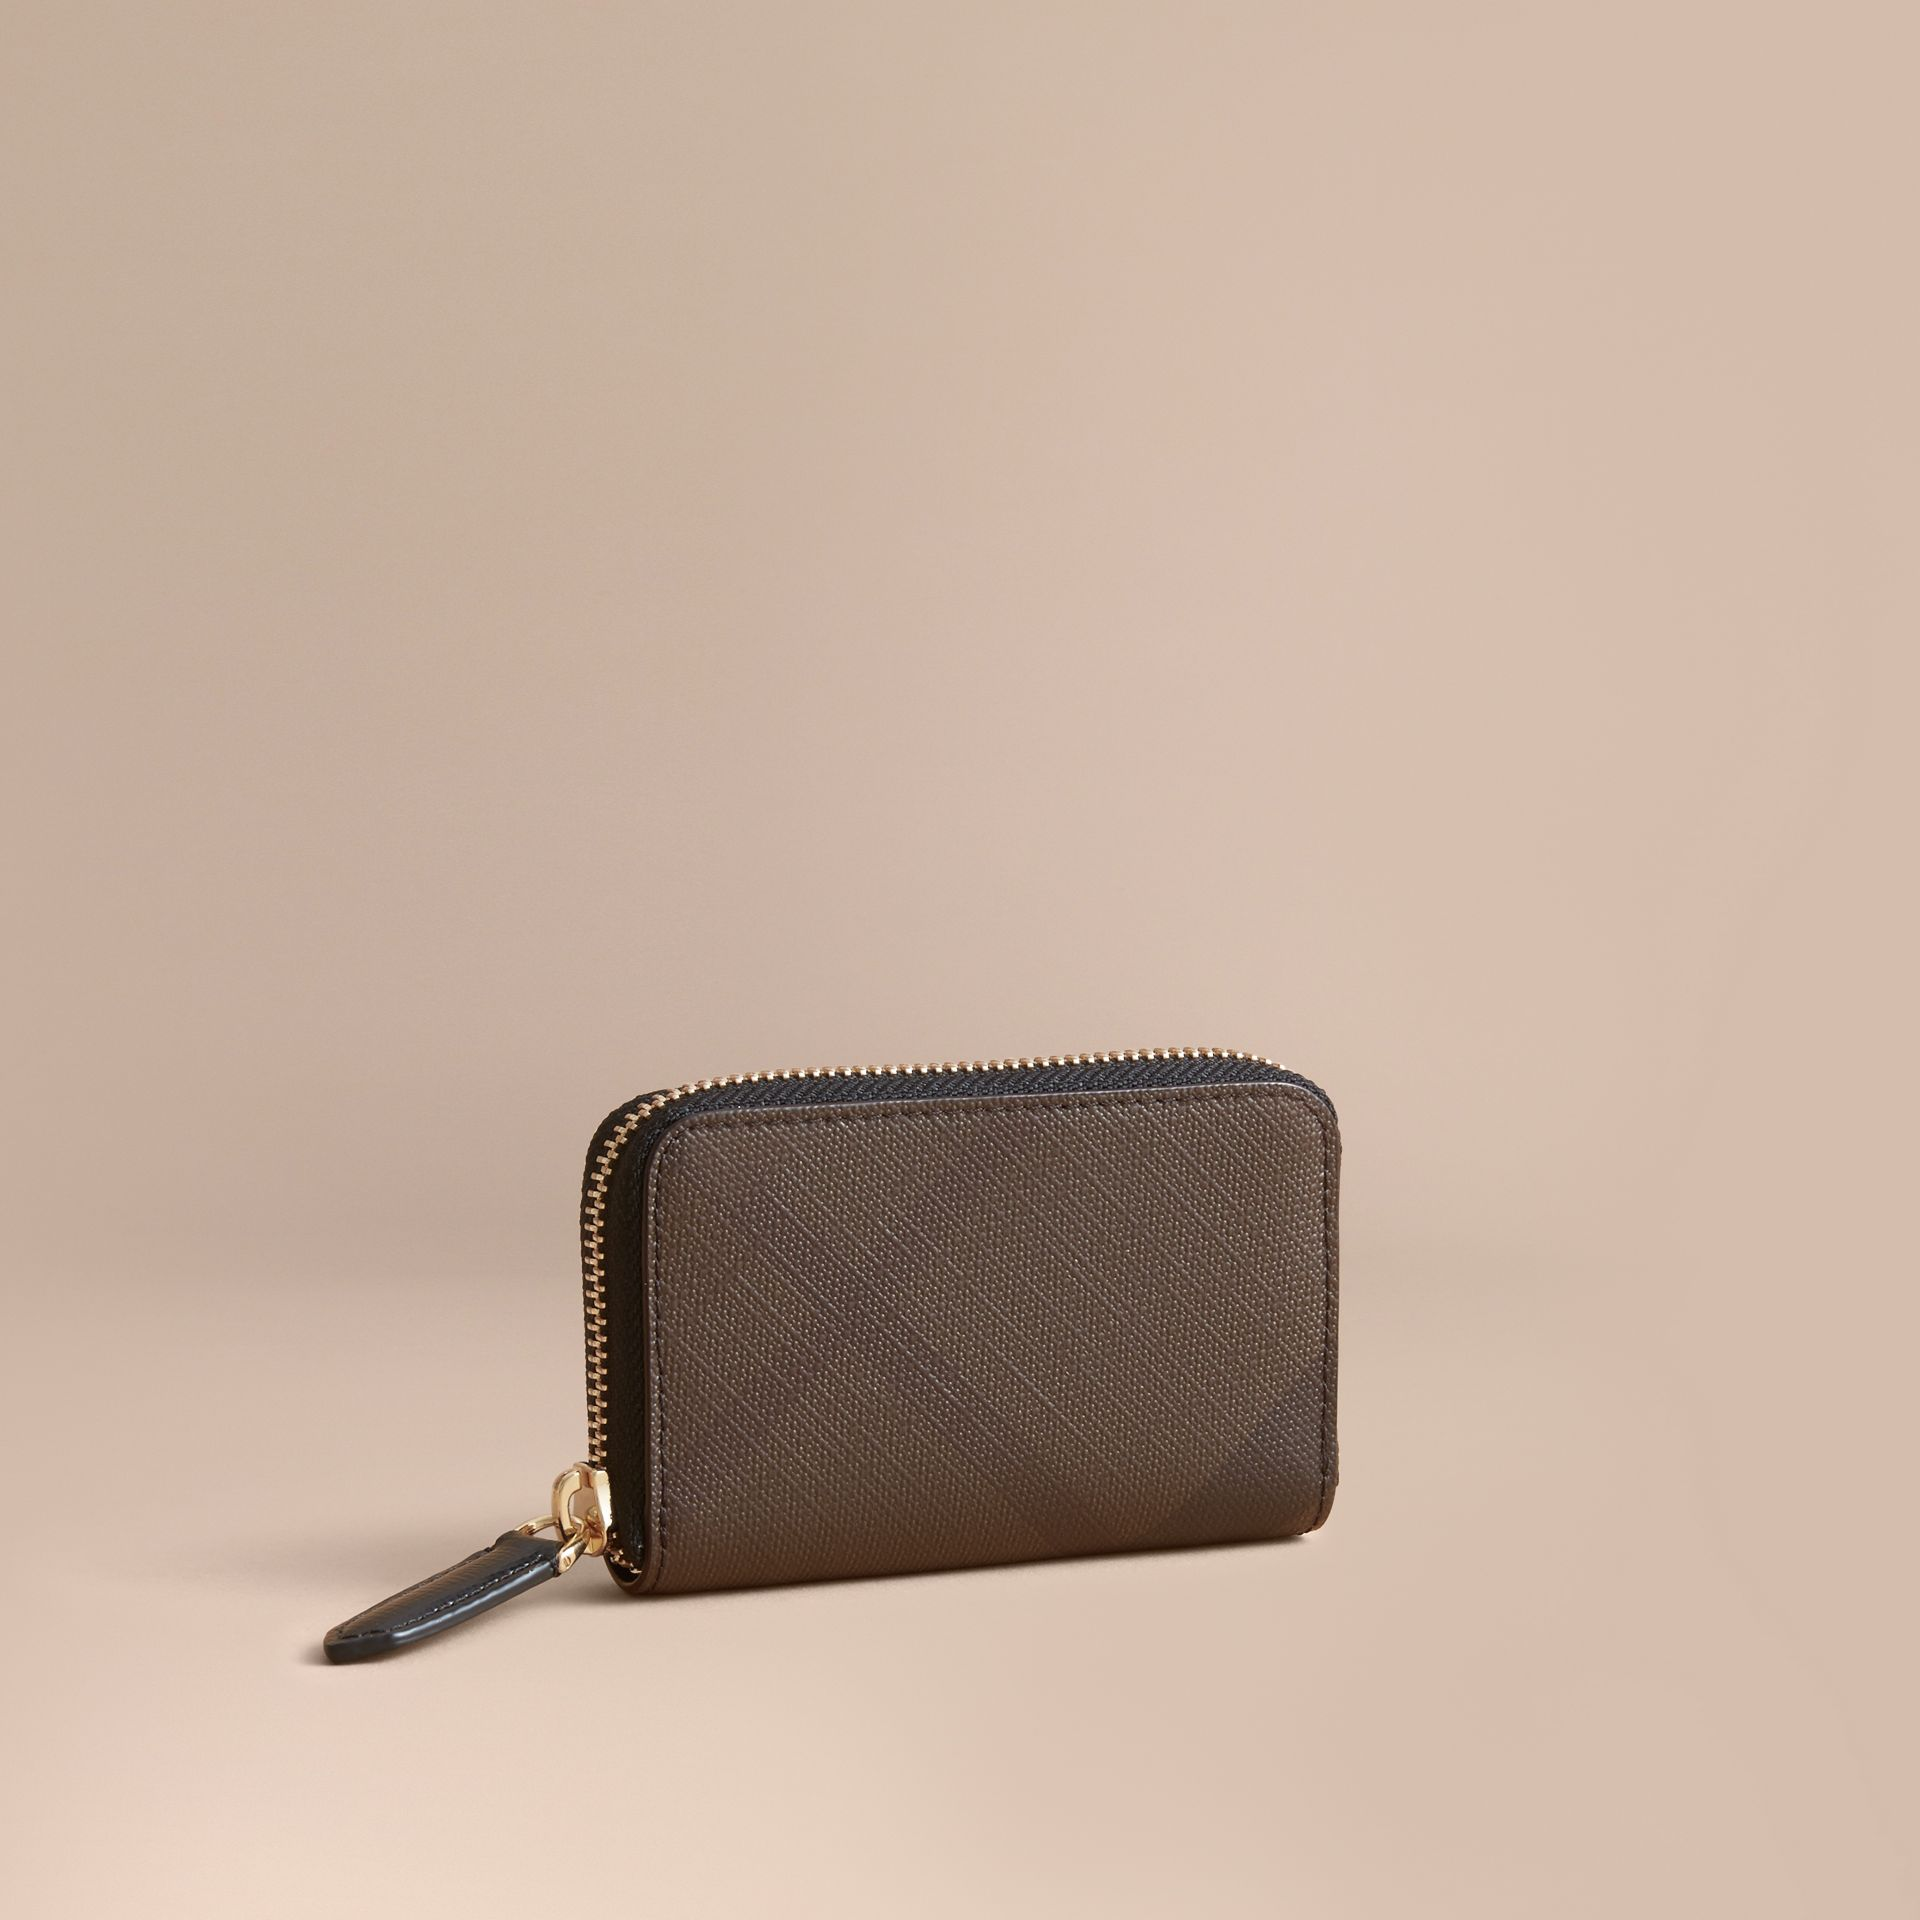 London Check Ziparound Coin Case in Chocolate/black - Men | Burberry Canada - gallery image 1